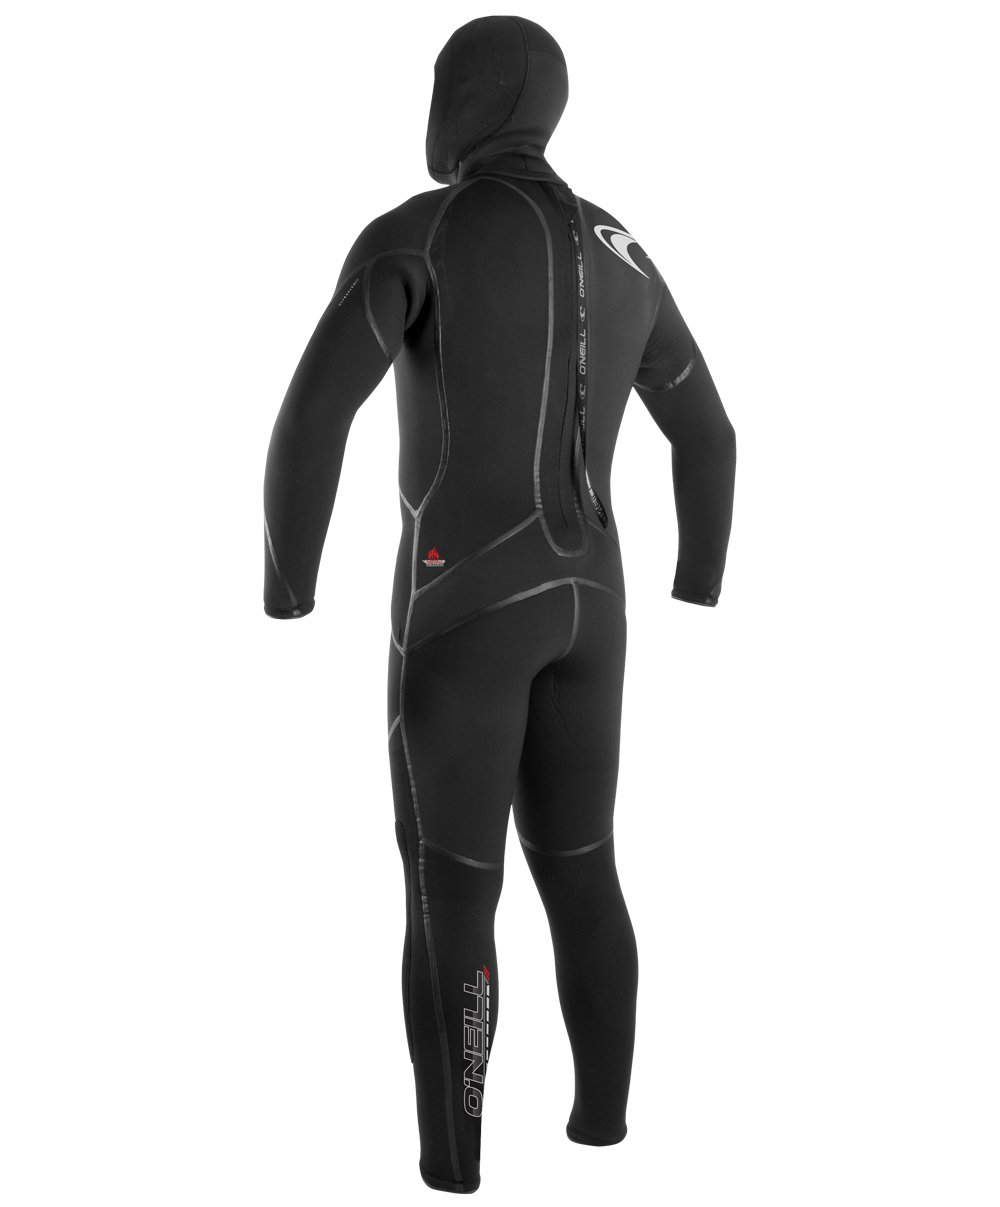 69d88dee92 Amazon.com  O Neill Men s Dive J-Type 7mm Back Zip Full Wetsuit with Hood   Sports   Outdoors